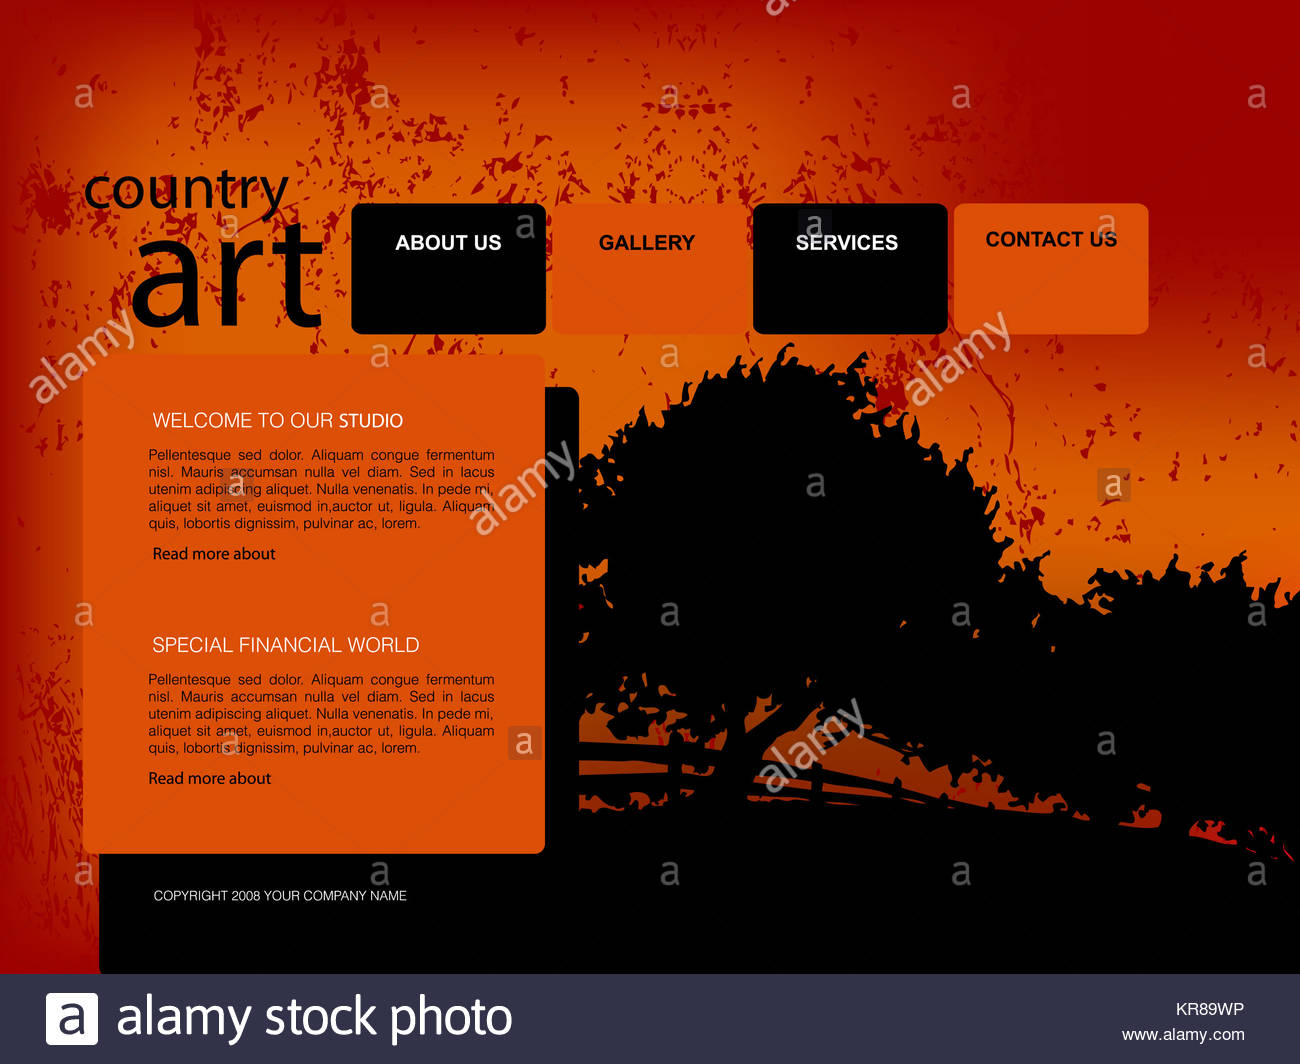 Black Header And Footer Imágenes De Stock & Black Header And Footer ...